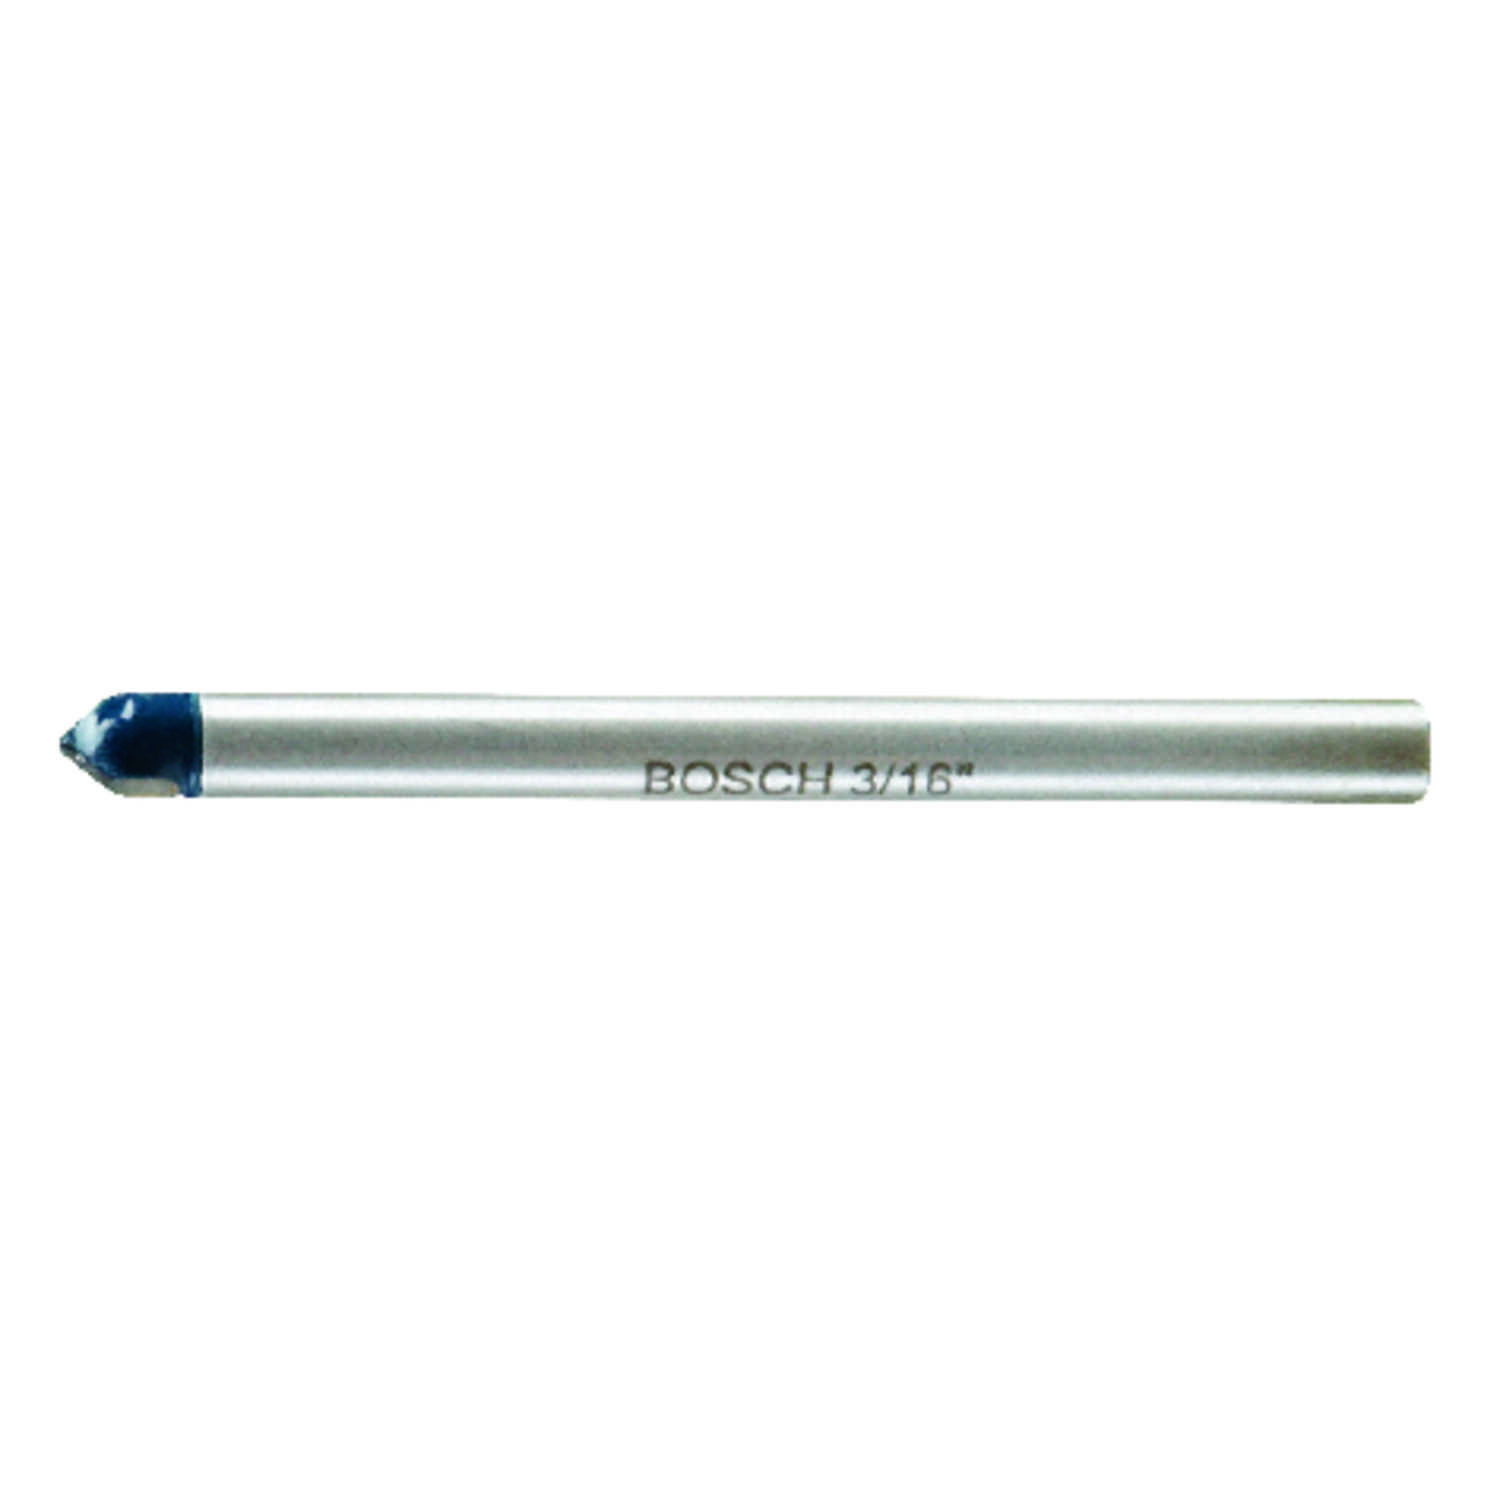 Bosch  3/16 in. Dia. x 4 in. L Carbide Tipped  Glass and Tile Bit  3-Flat Shank  1 pc.